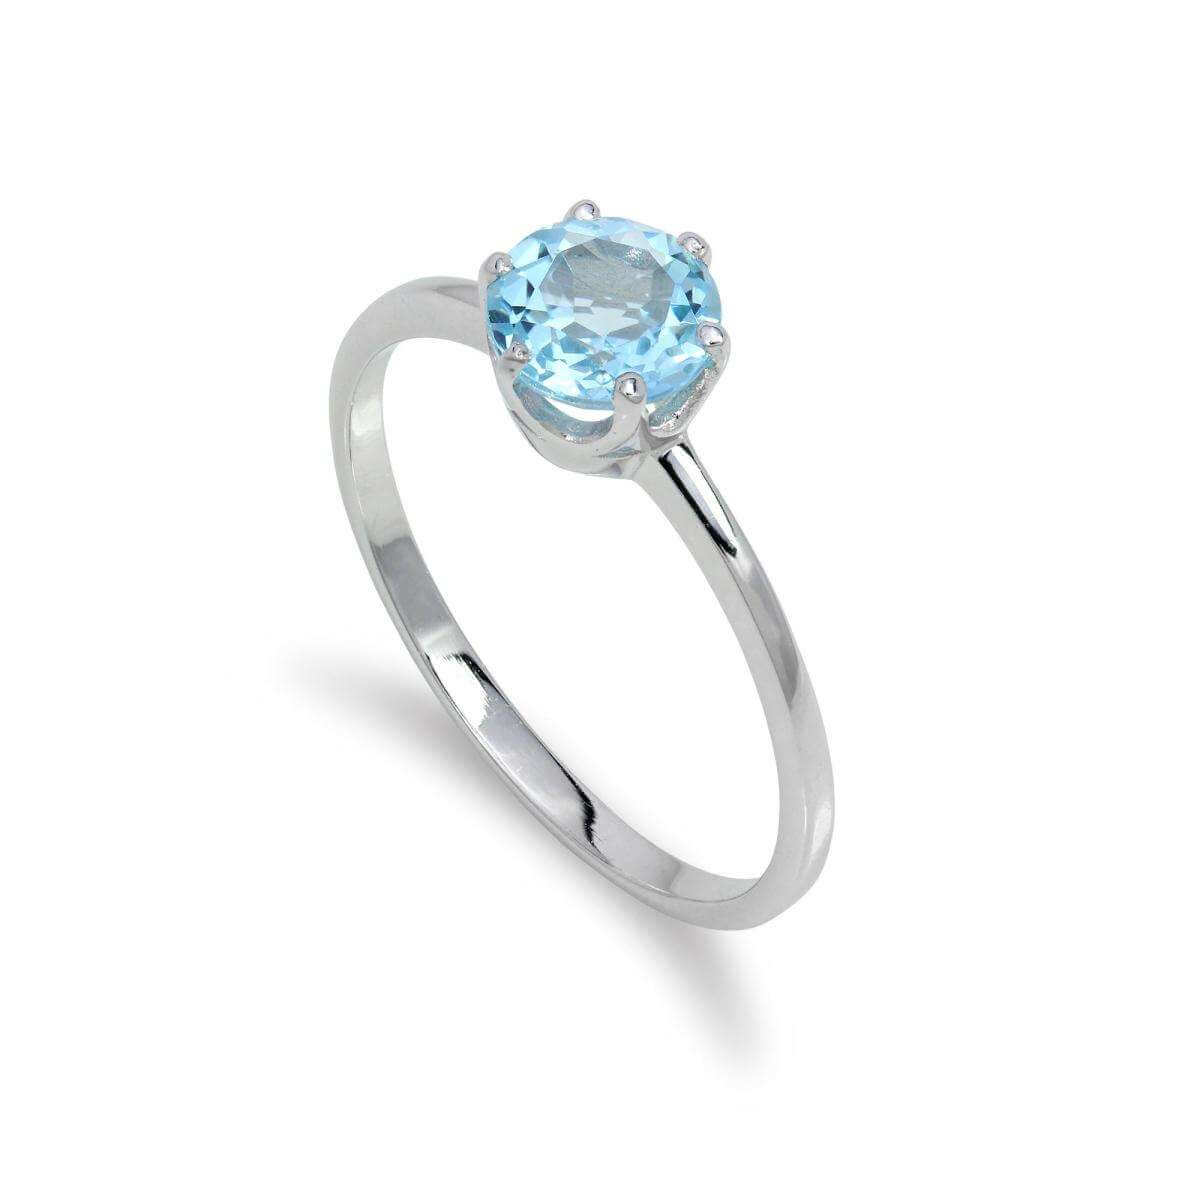 Sterling Silver & 6mm Round Sky Blue Topaz Gemstone Ring Size I - U